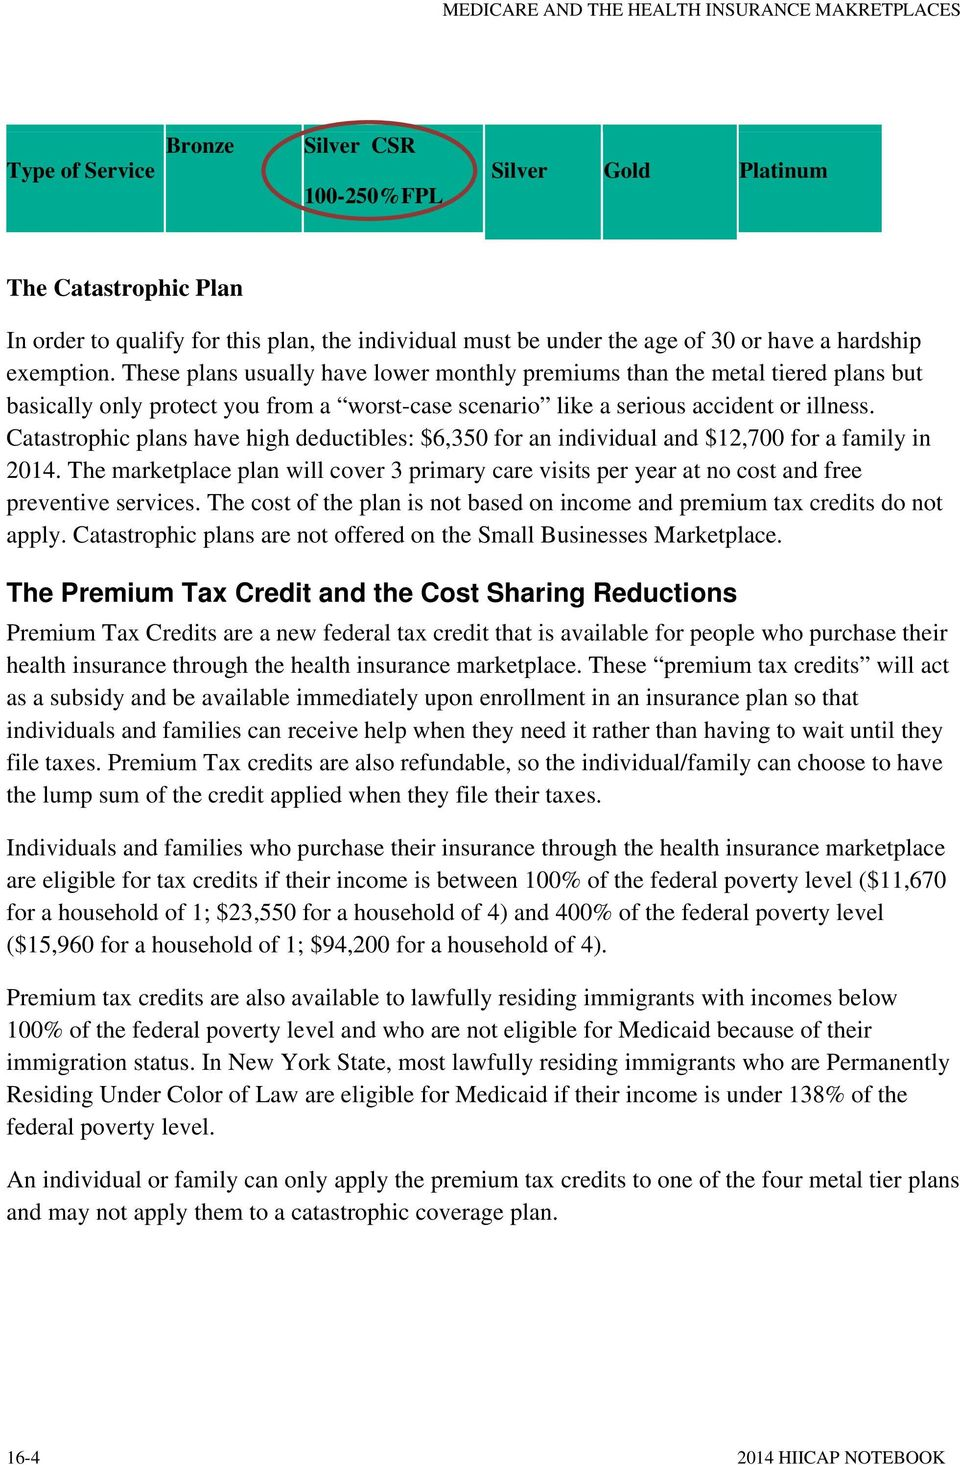 Catastrophic plans have high deductibles: $6,350 for an individual and $12,700 for a family in 2014.